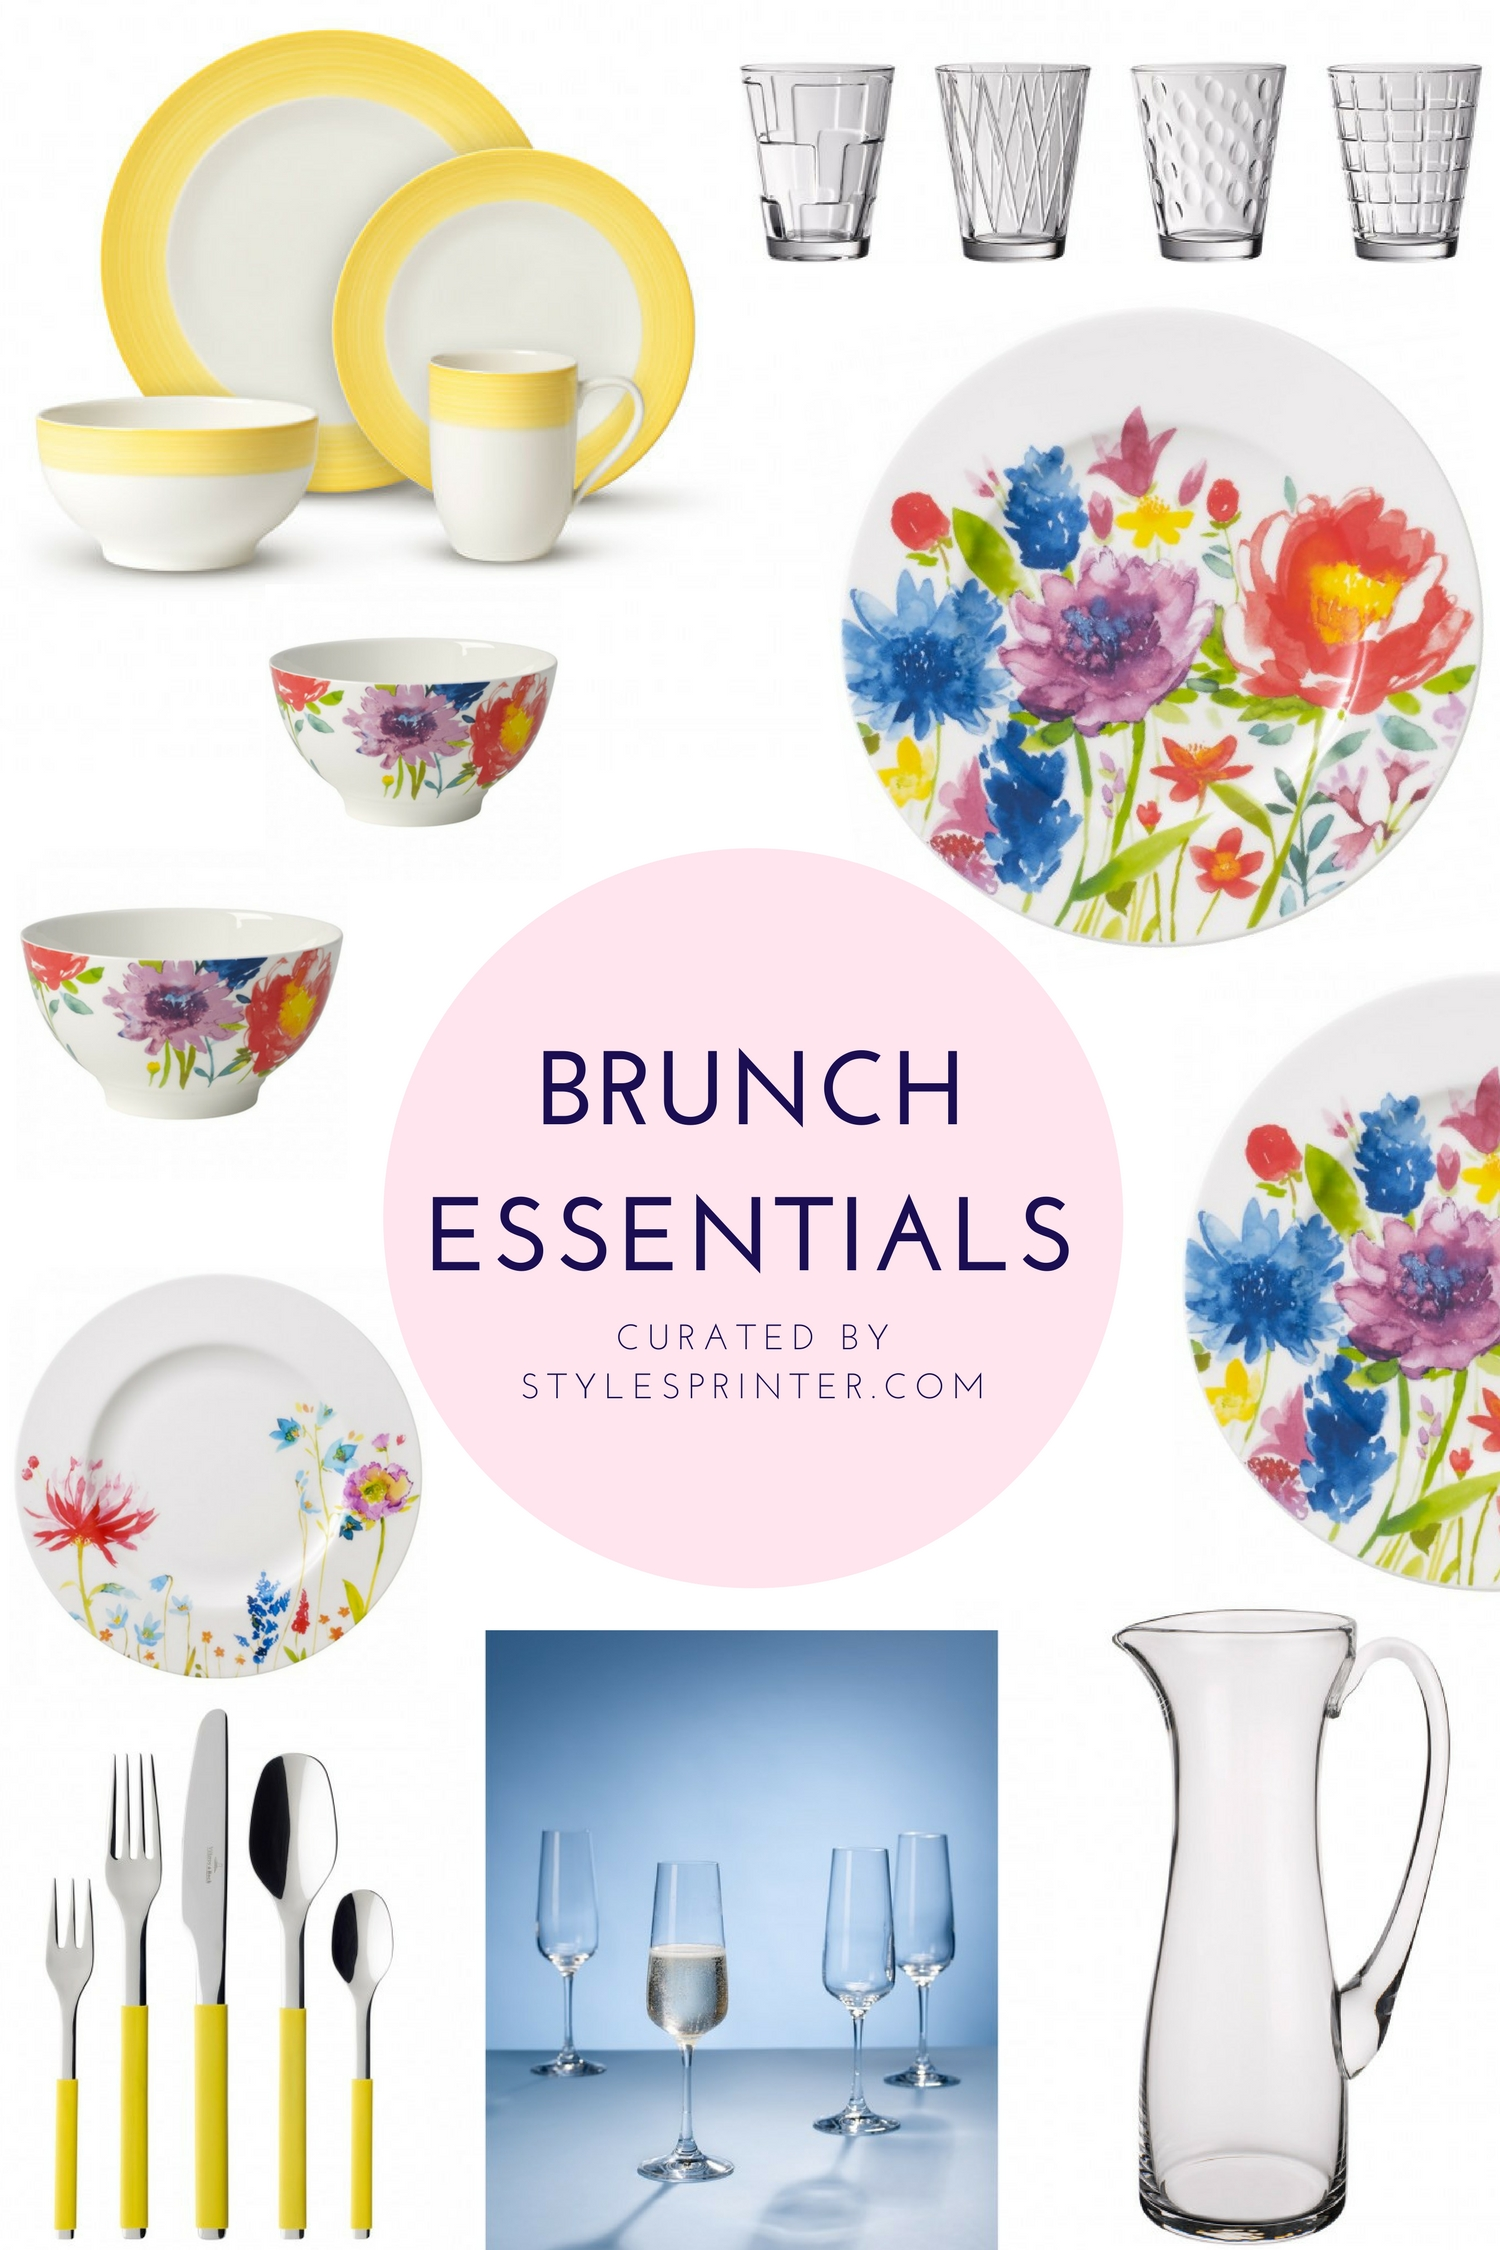 Brunch Essentials - Villeroy Boch